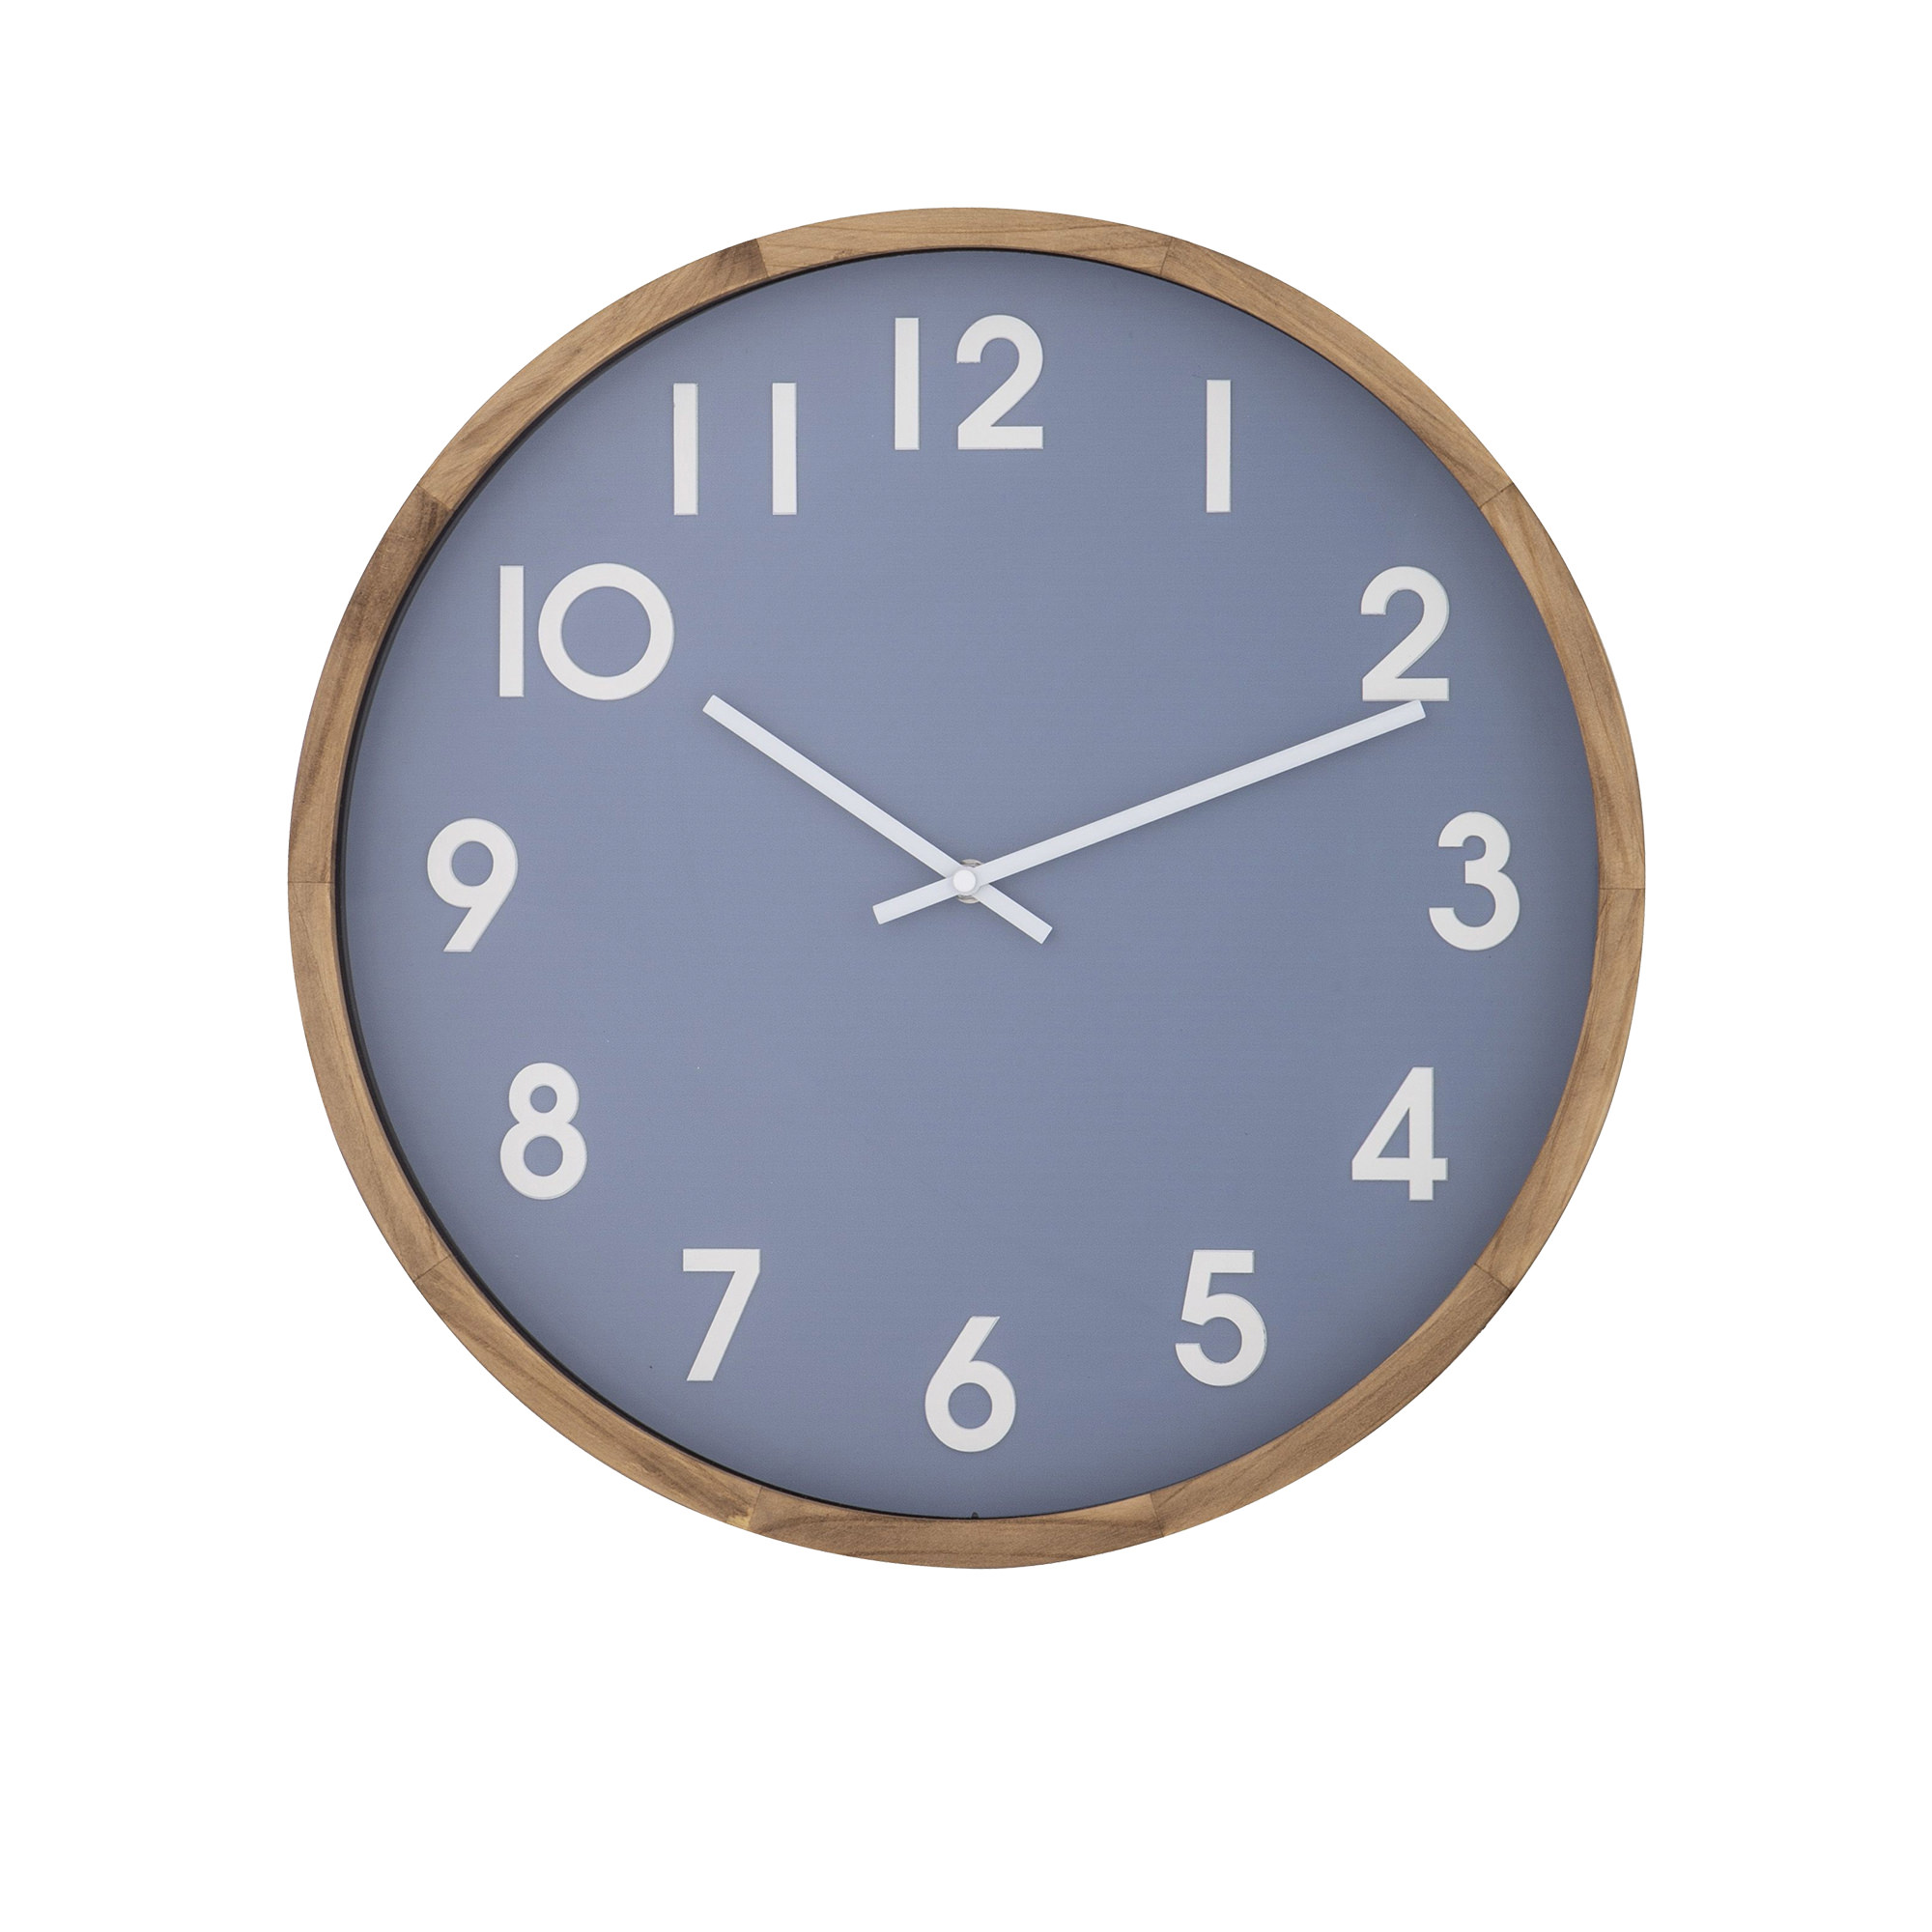 Amalfi Leonard Wall Clock 41.5cm Blue, White & Neutral